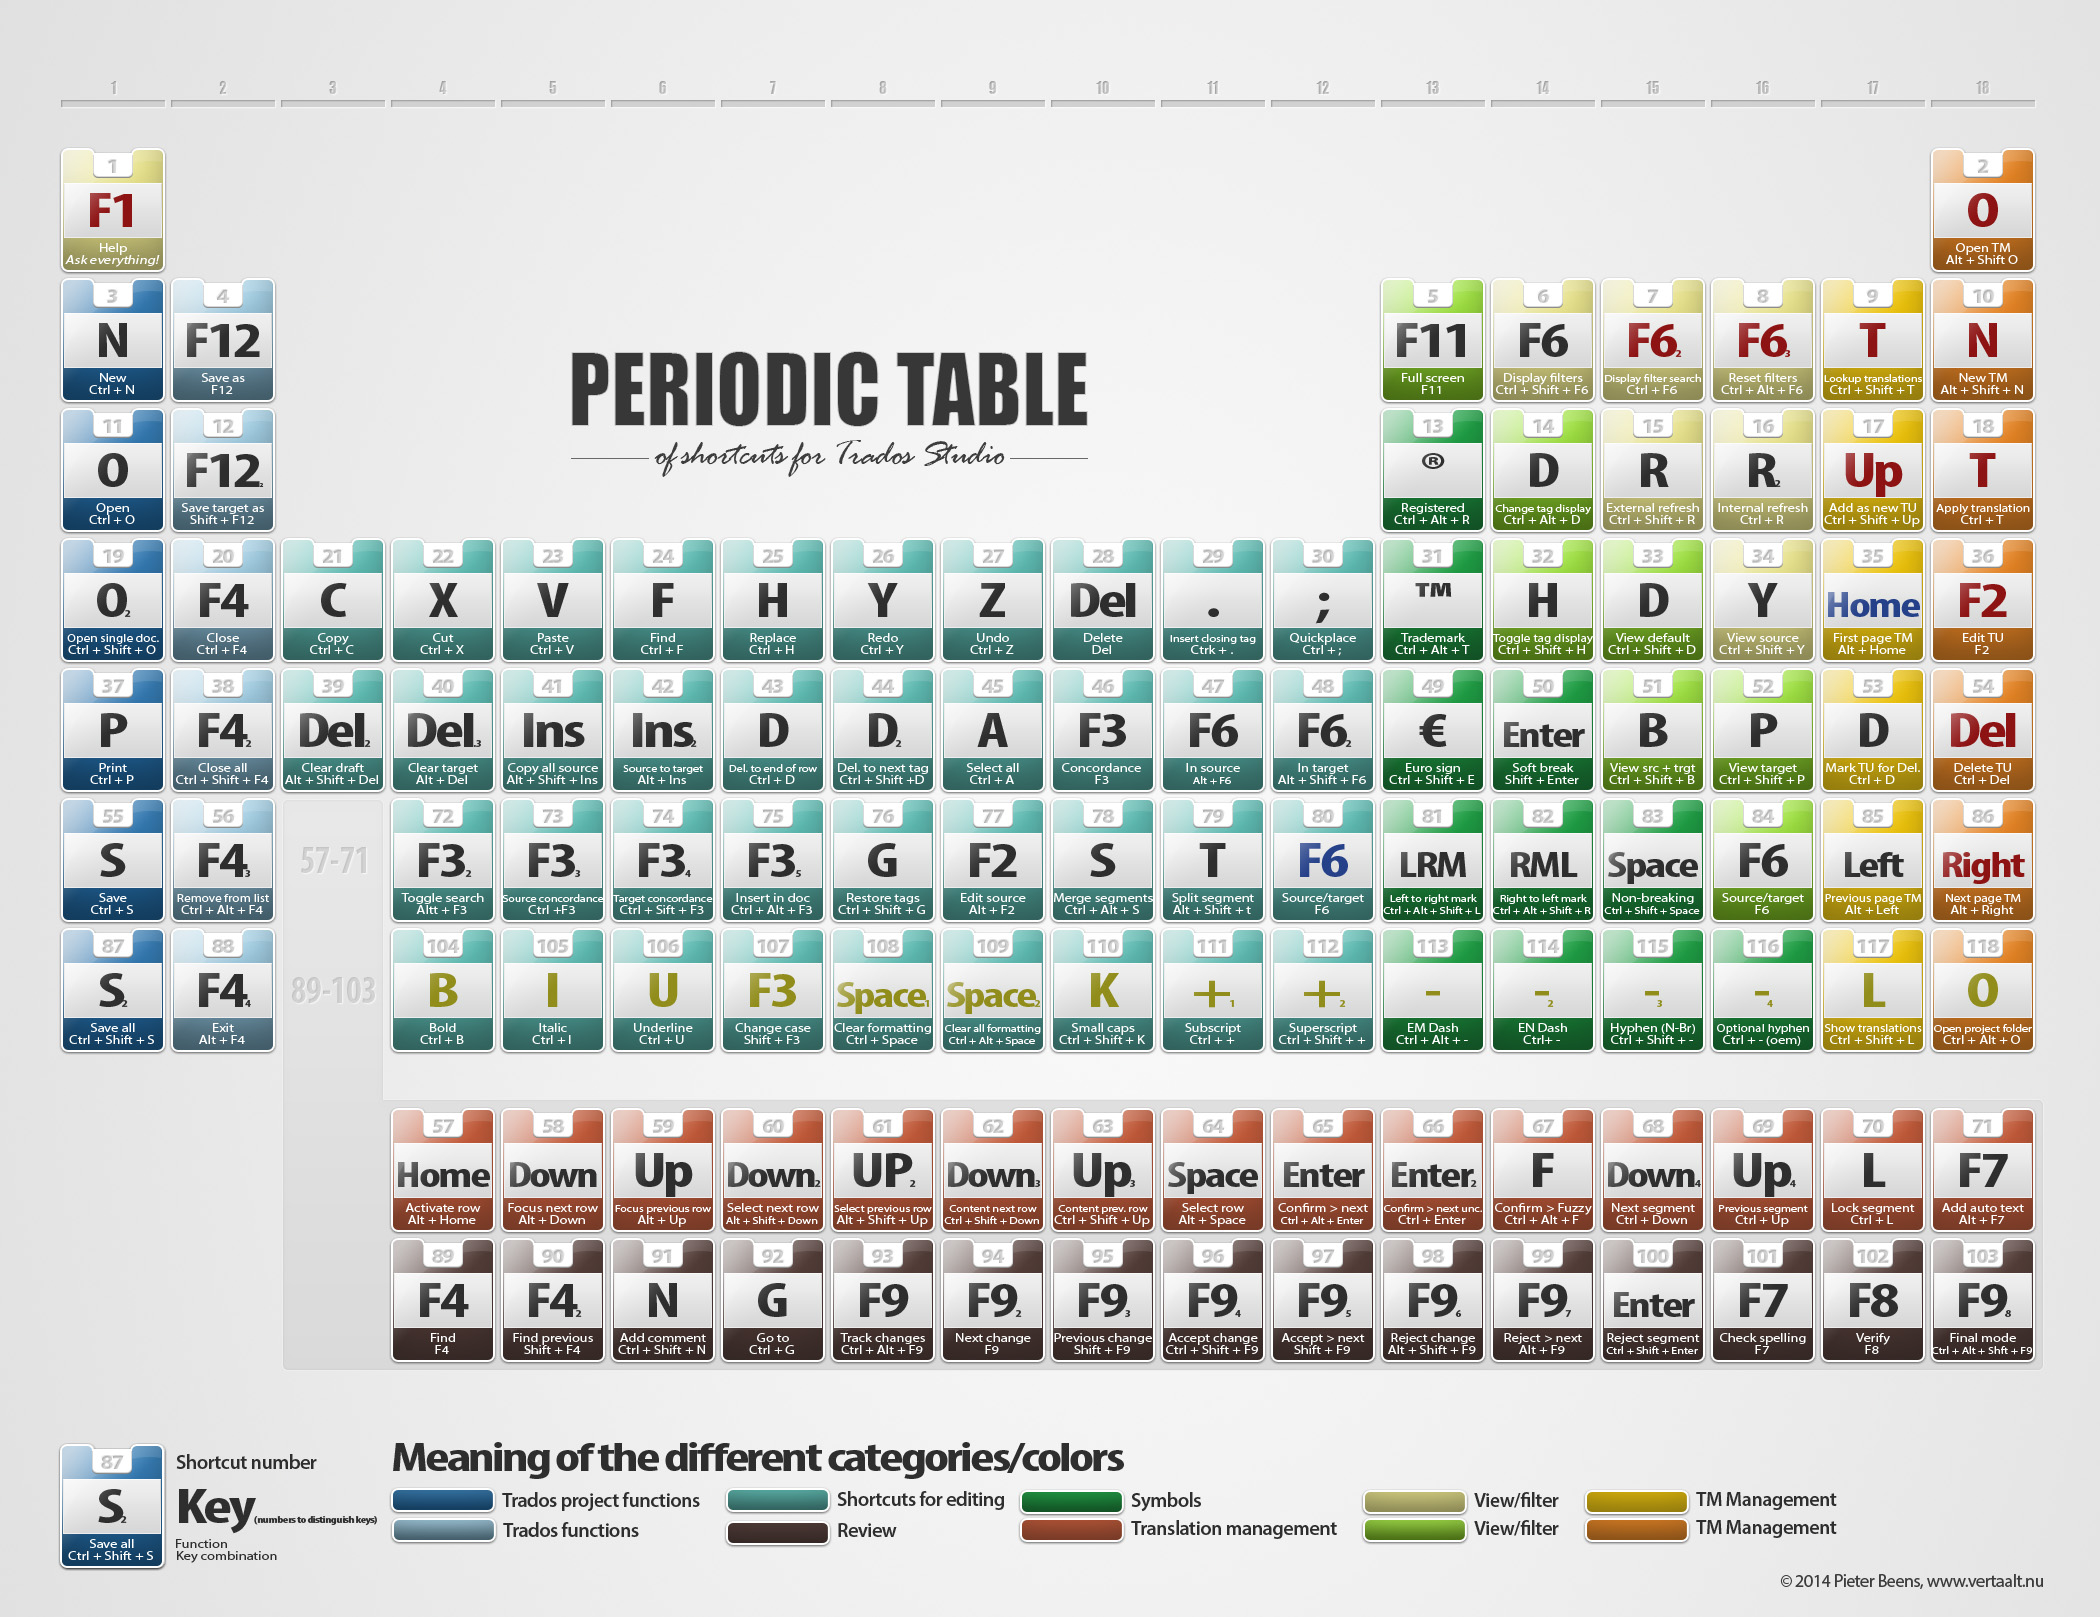 The periodic table of trados shortcuts trados studios 20112014 download the periodic table urtaz Image collections